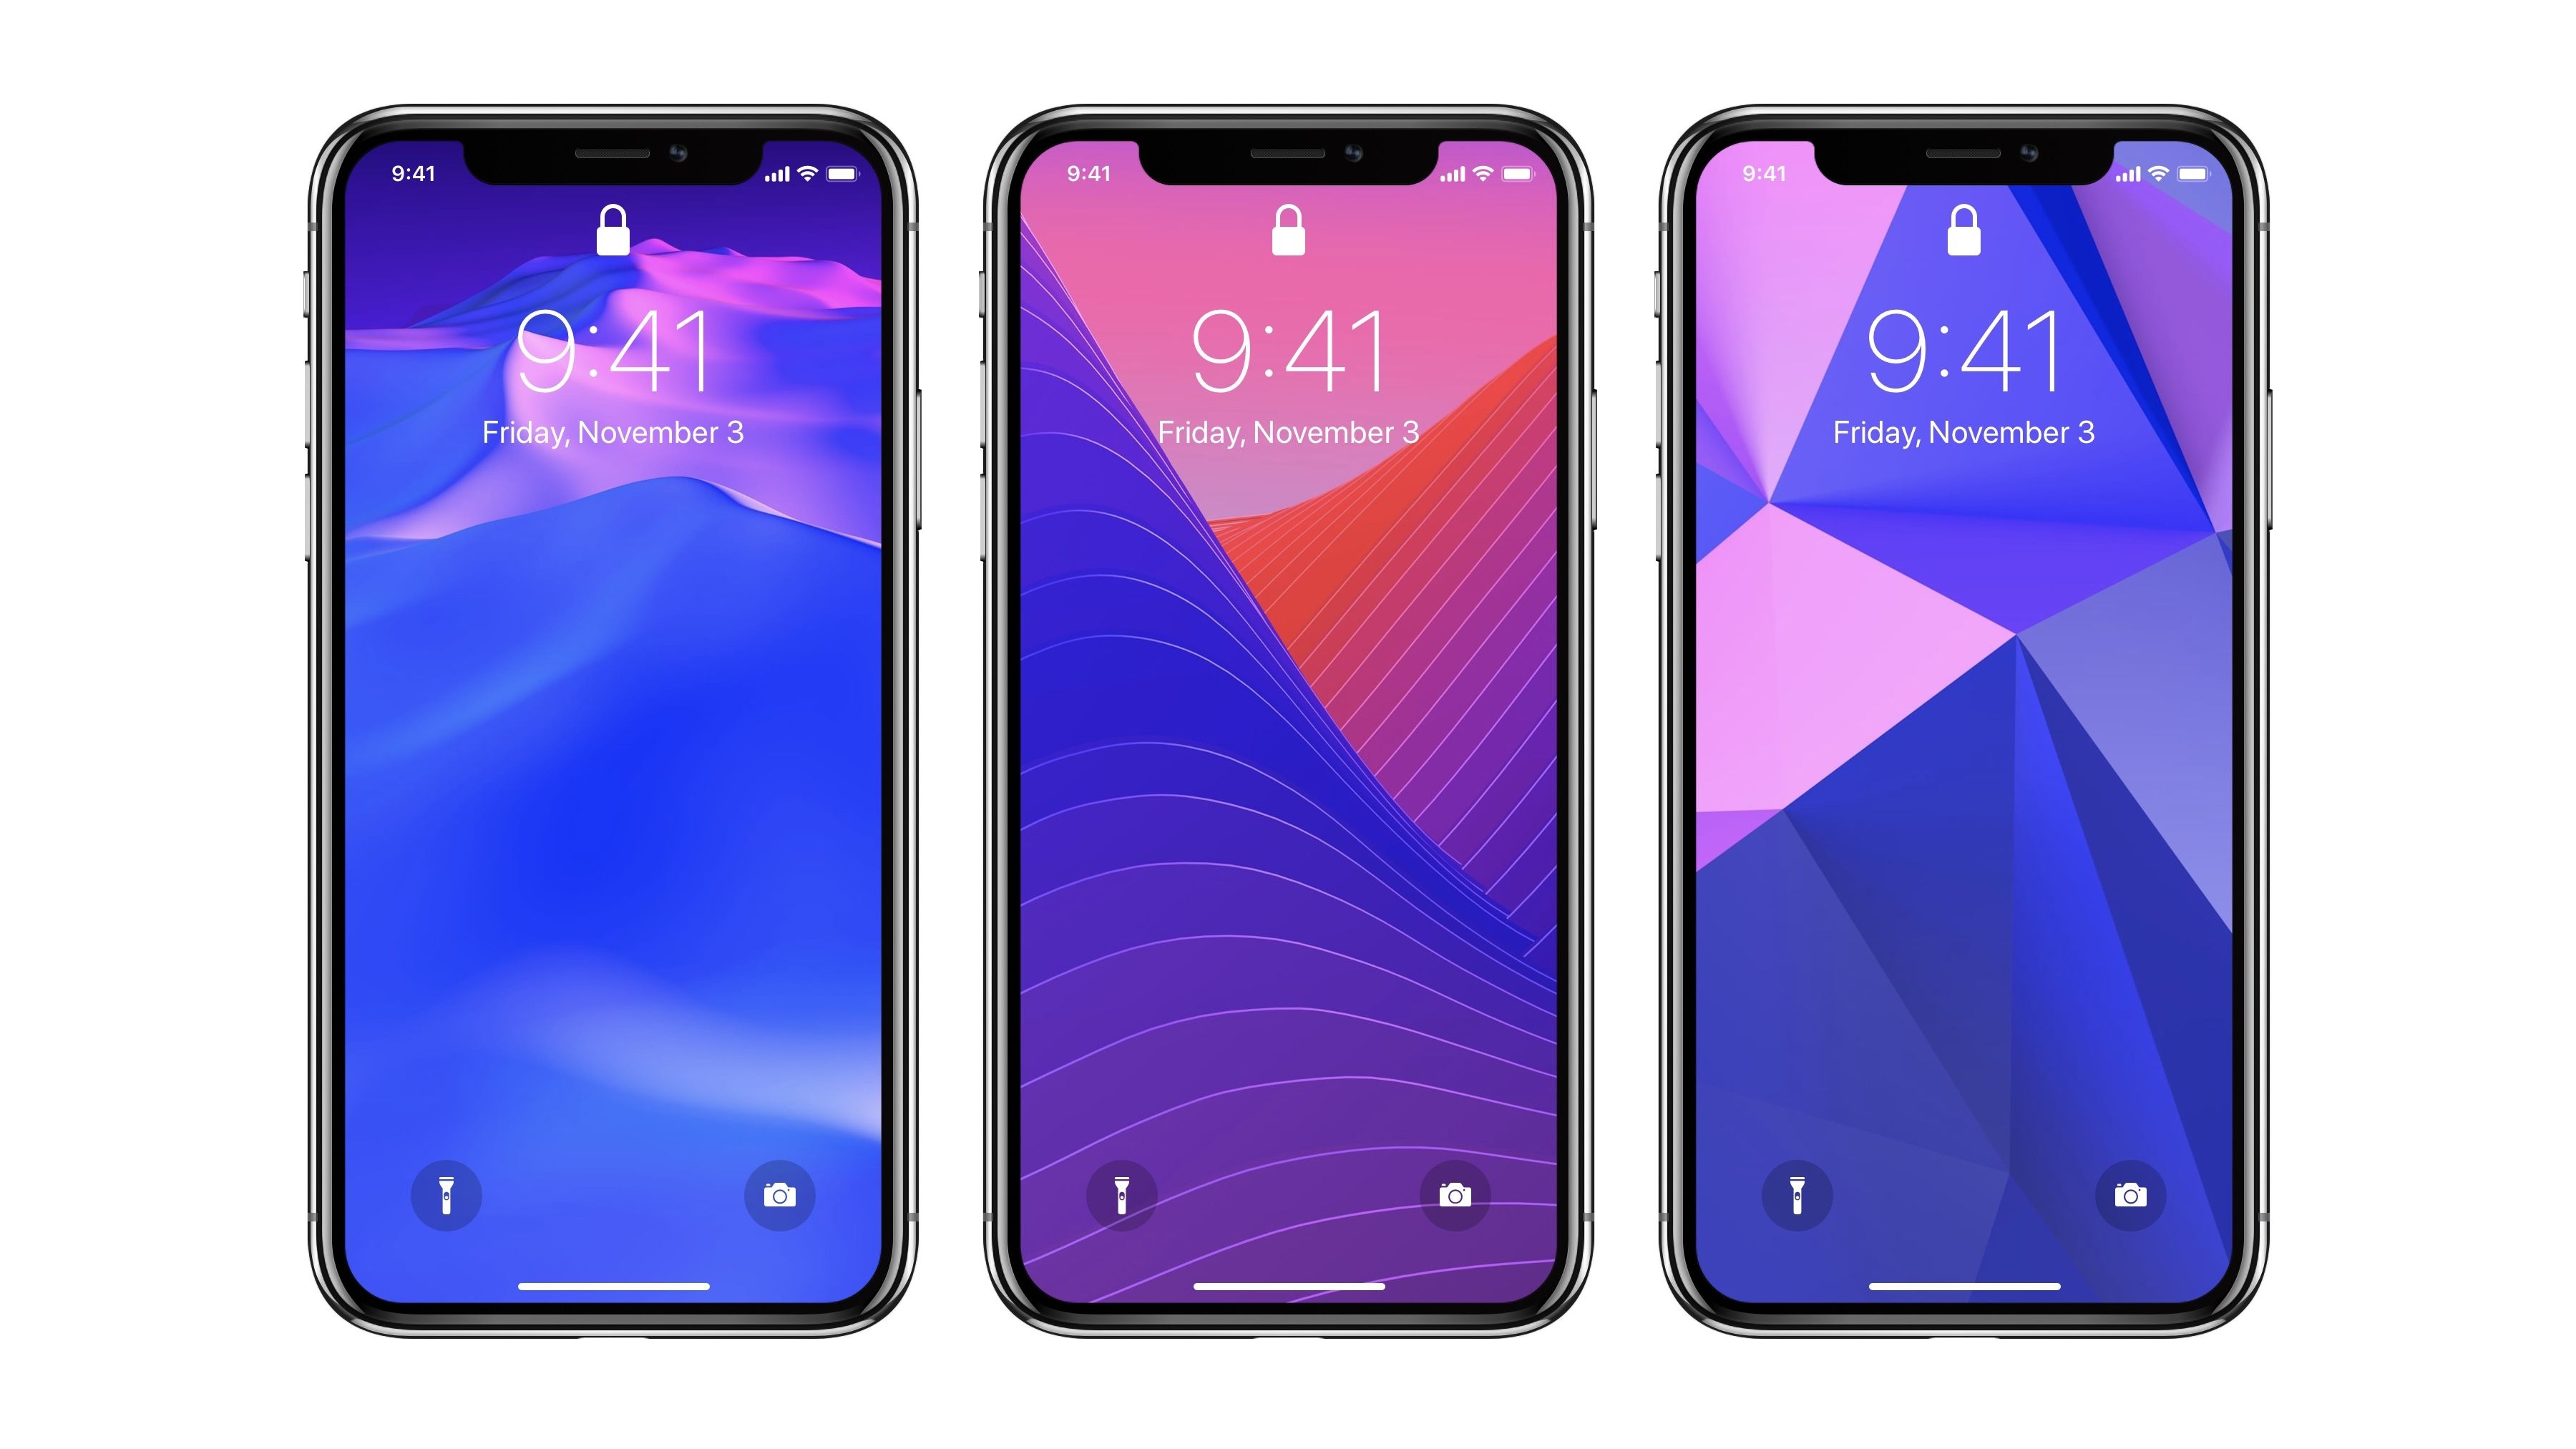 High Resolution Wallpapers For Your Shiny New Iphone X Made In Cinema 4d Iphone Phone Best Wallpaper For Mobile